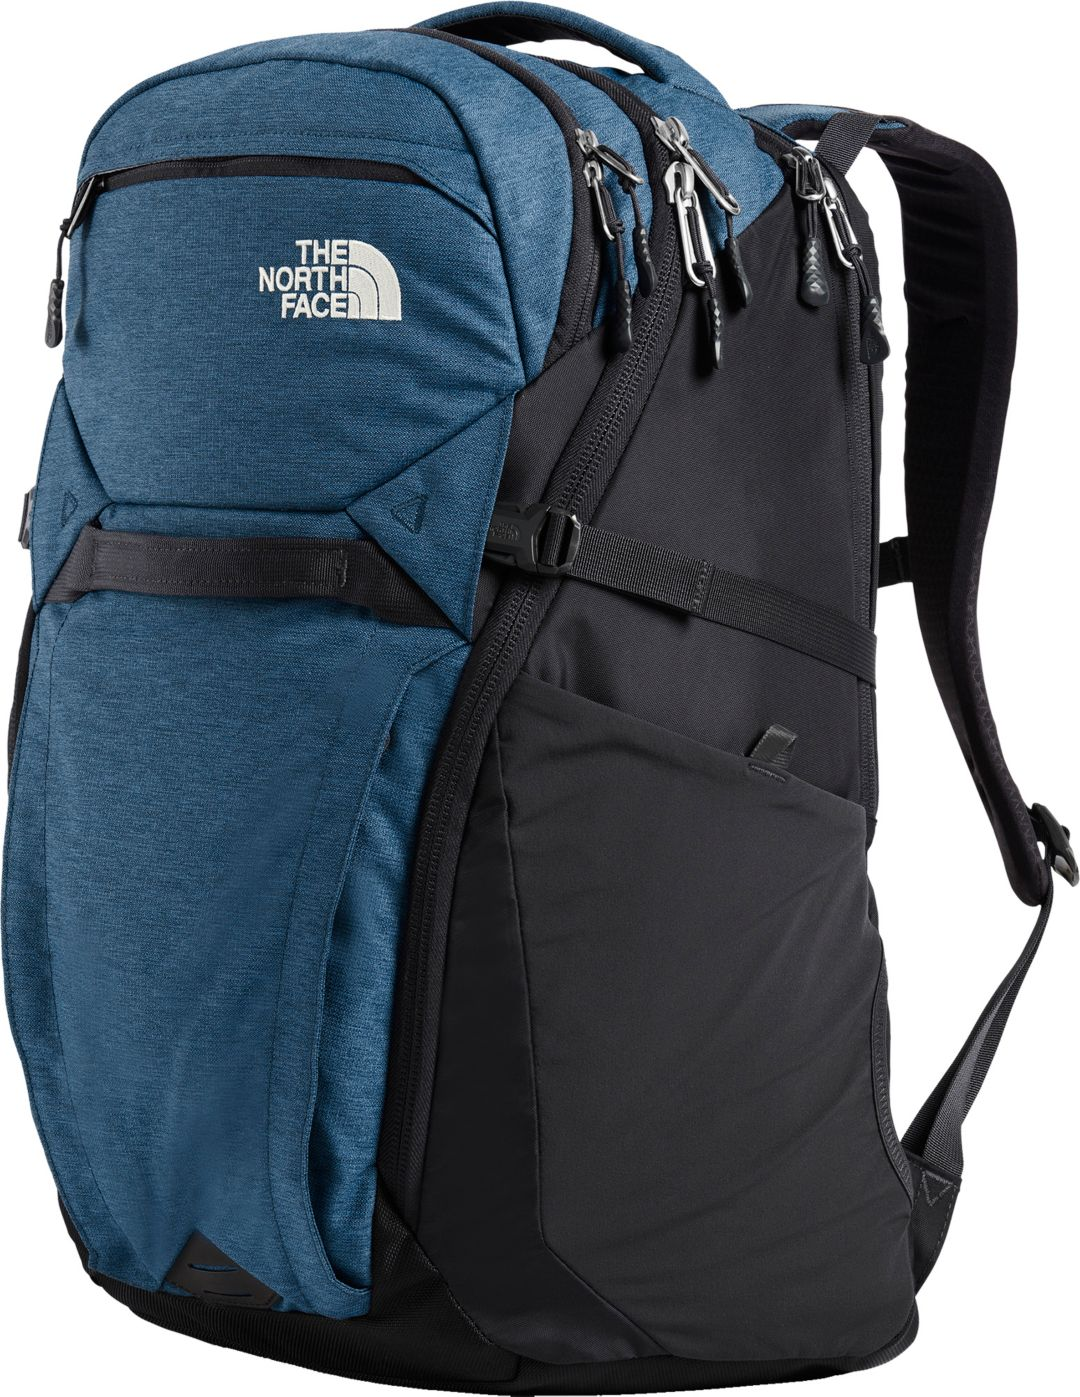 85dca2876 The North Face Men's Router 18 Backpack